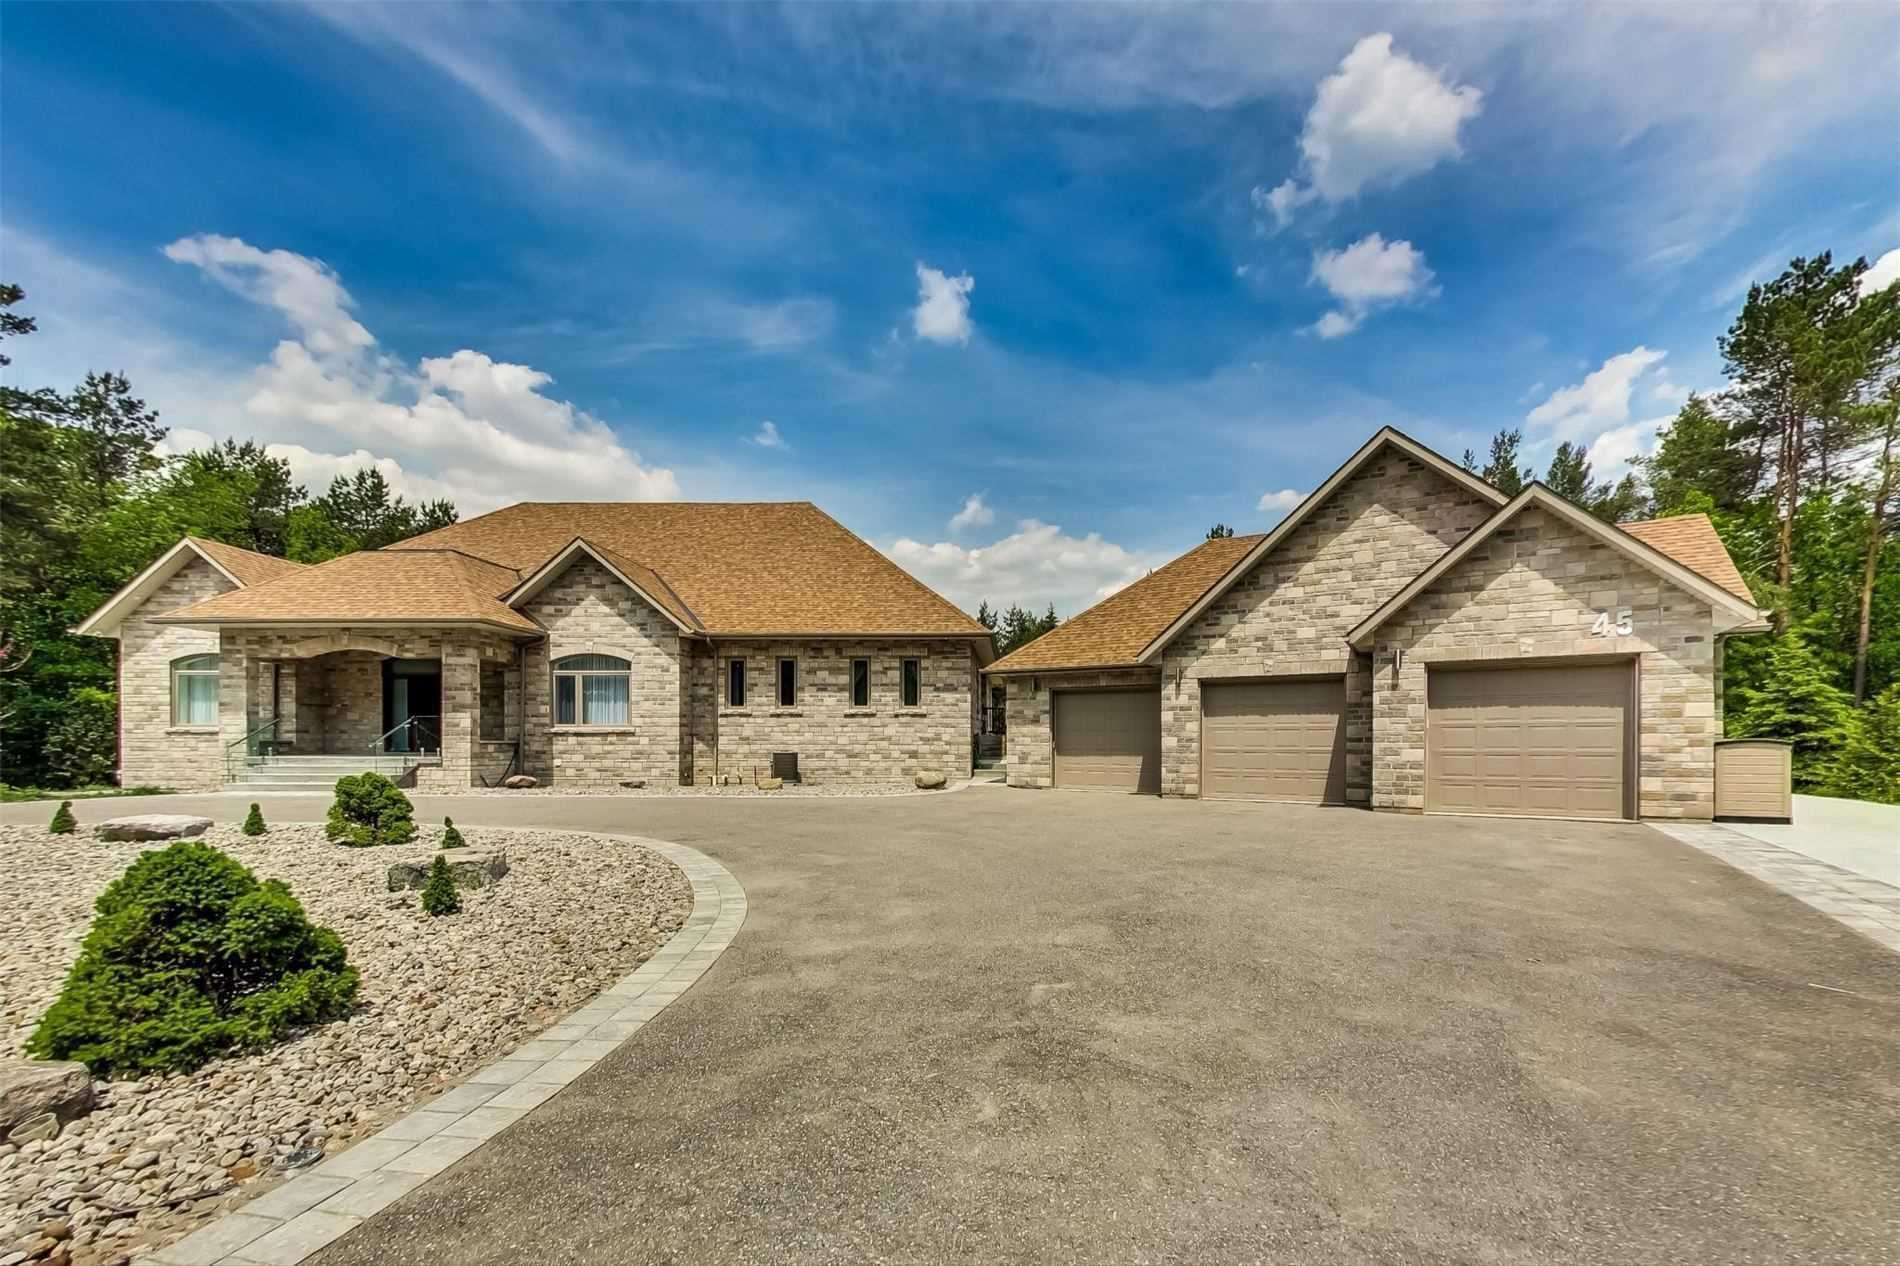 Detached house For Sale In Whitchurch-Stouffville - 45 Loggers Tr, Whitchurch-Stouffville, Ontario, Canada L3Y4W1 , 4 Bedrooms Bedrooms, ,4 BathroomsBathrooms,Detached,For Sale,Loggers